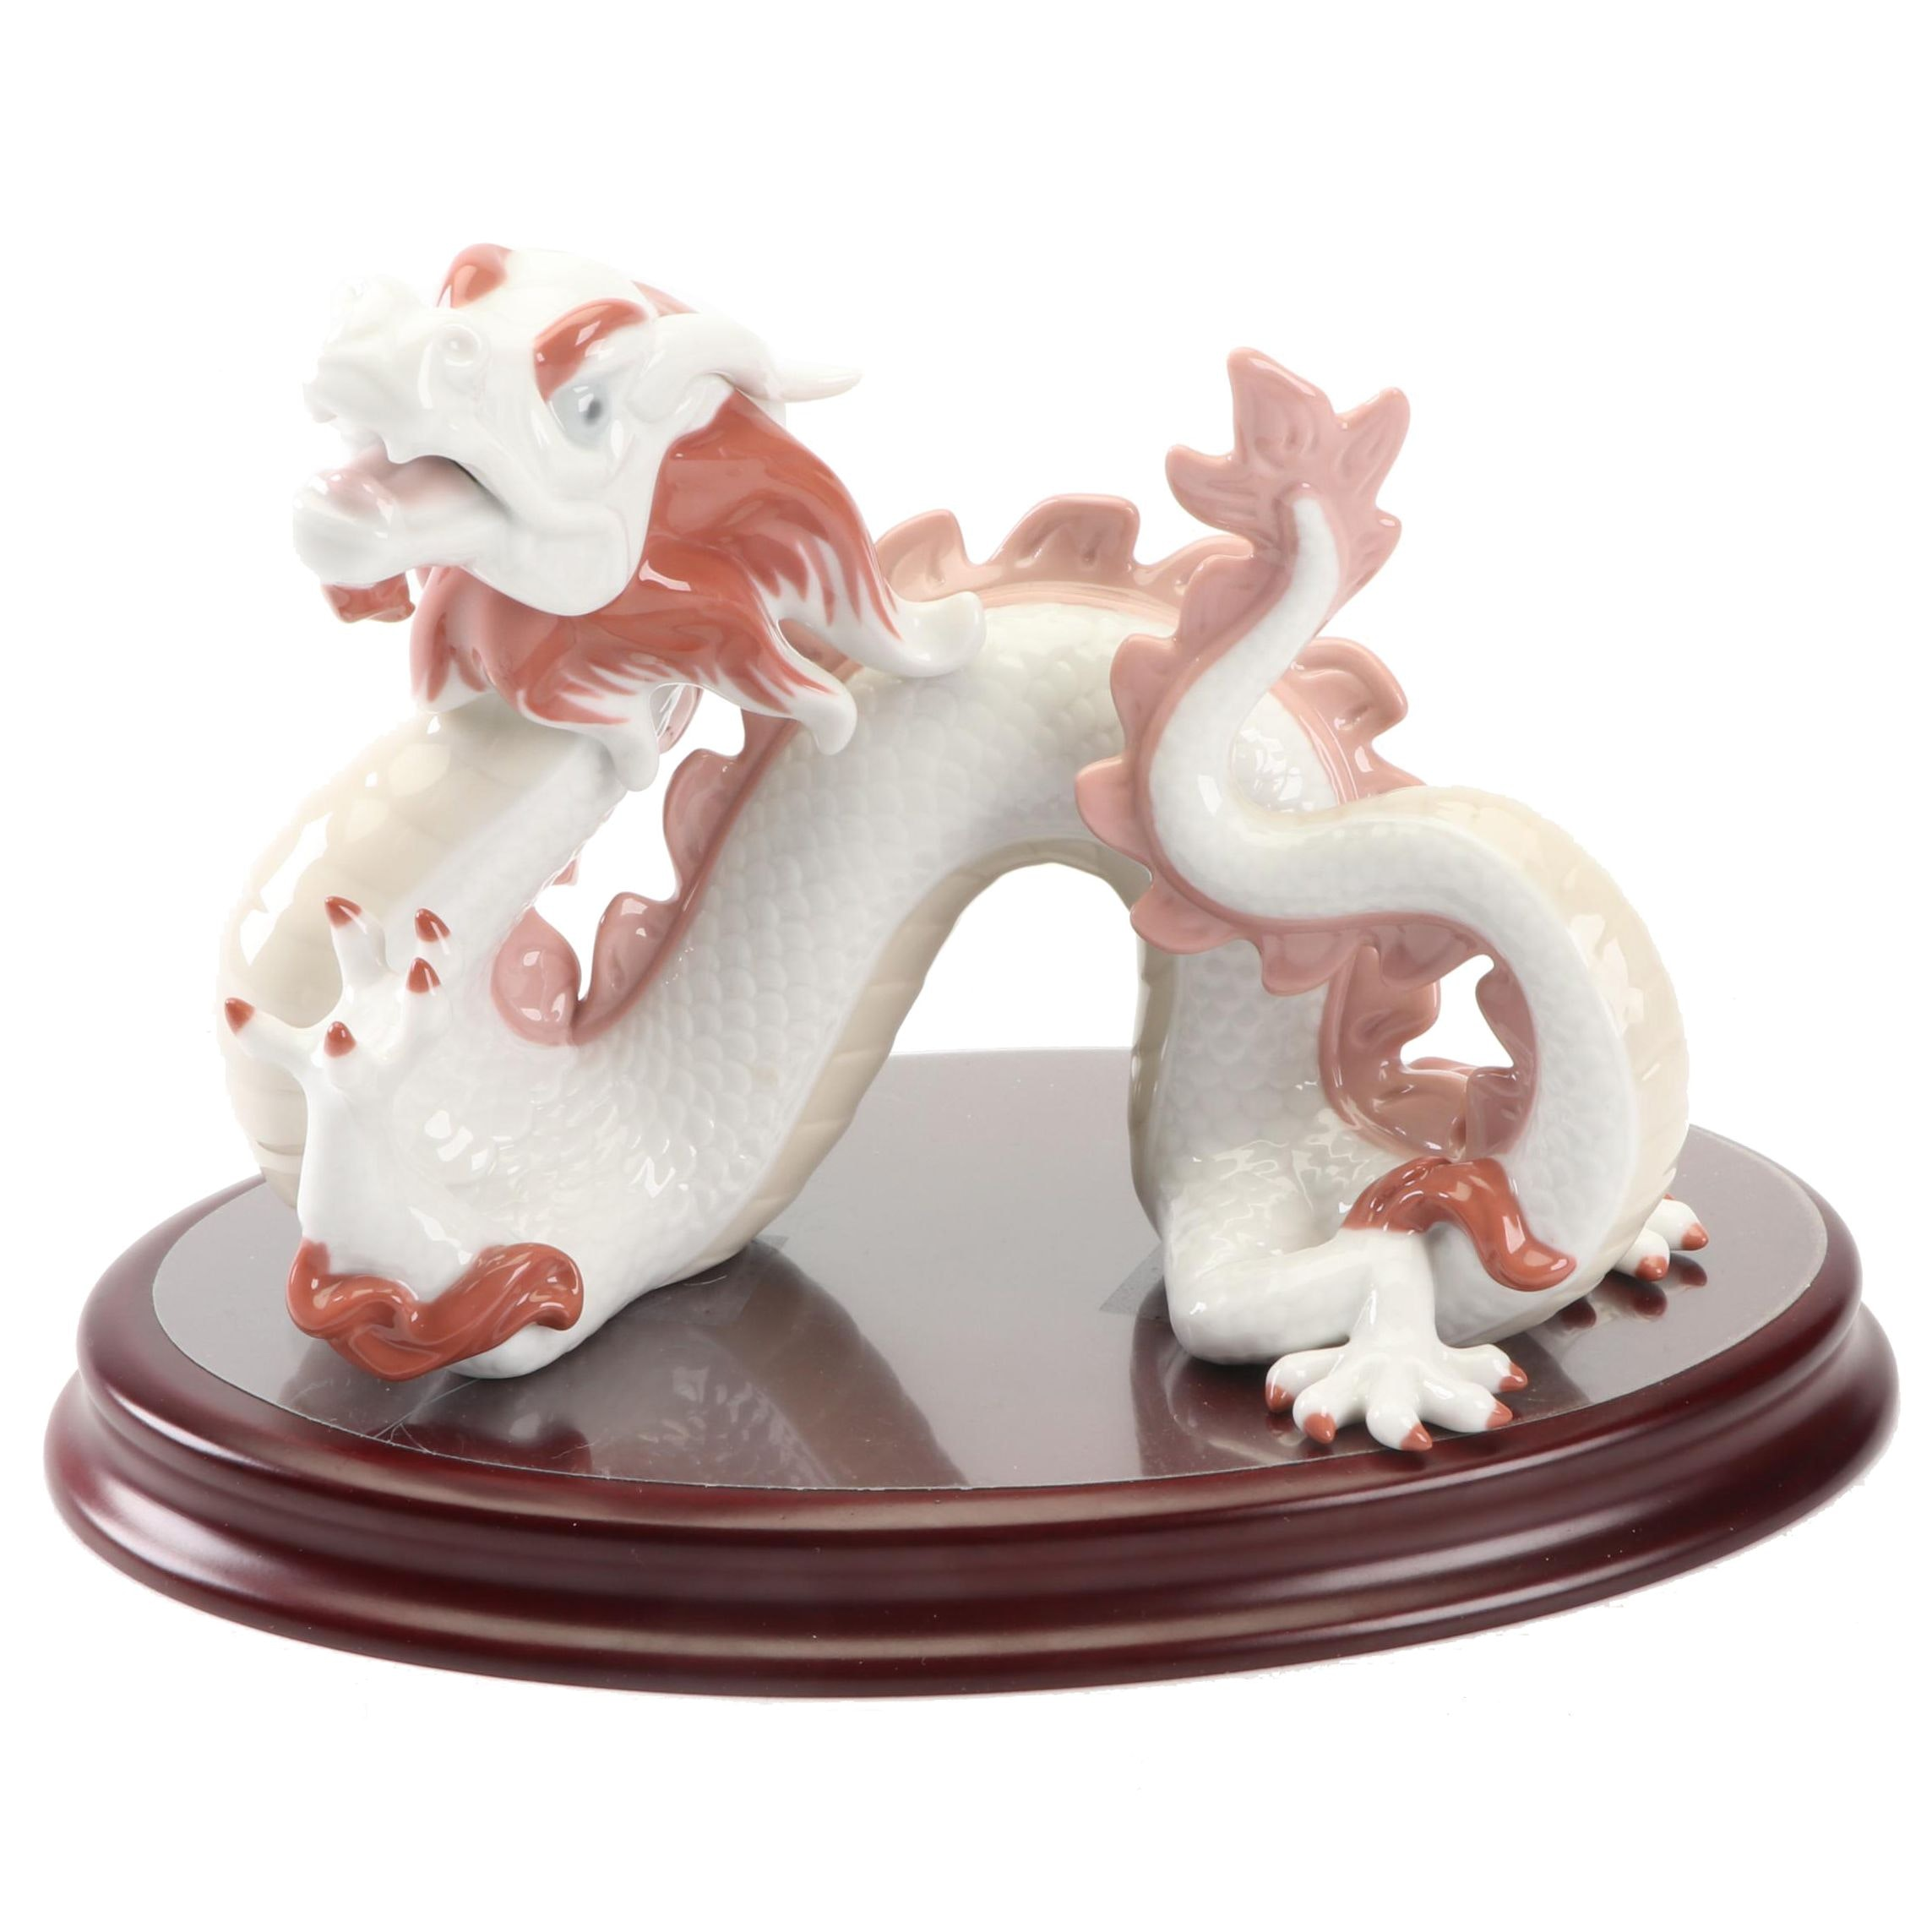 "Lladró ""The Dragon"" Porcelain Figurine"